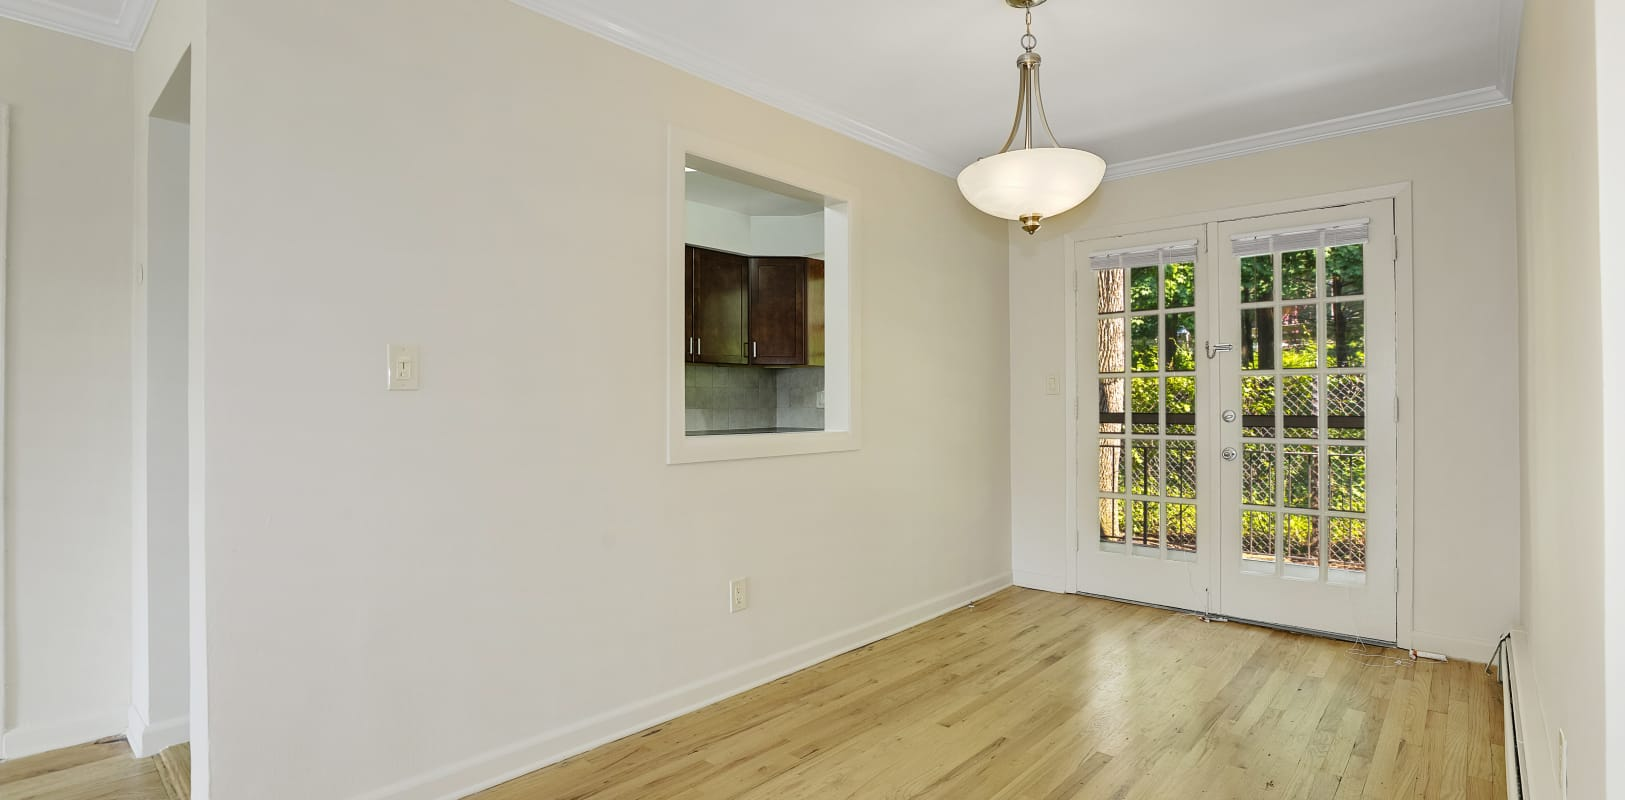 Lovely dining room with wood style flooring and hanging light at Parkway East Apartments in Caldwell, New Jersey